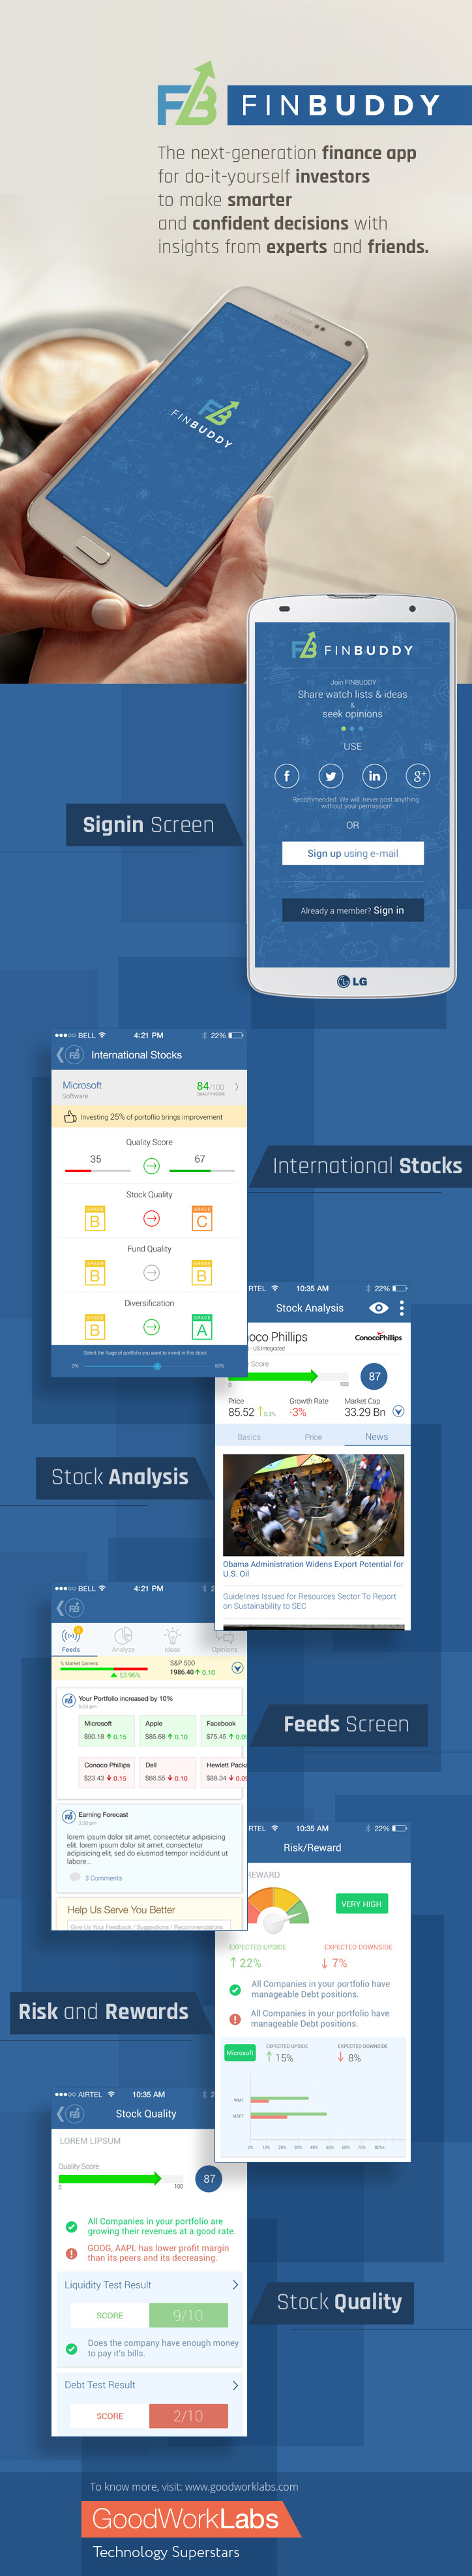 finbuddy-finance-mobile-app-goodworklabs